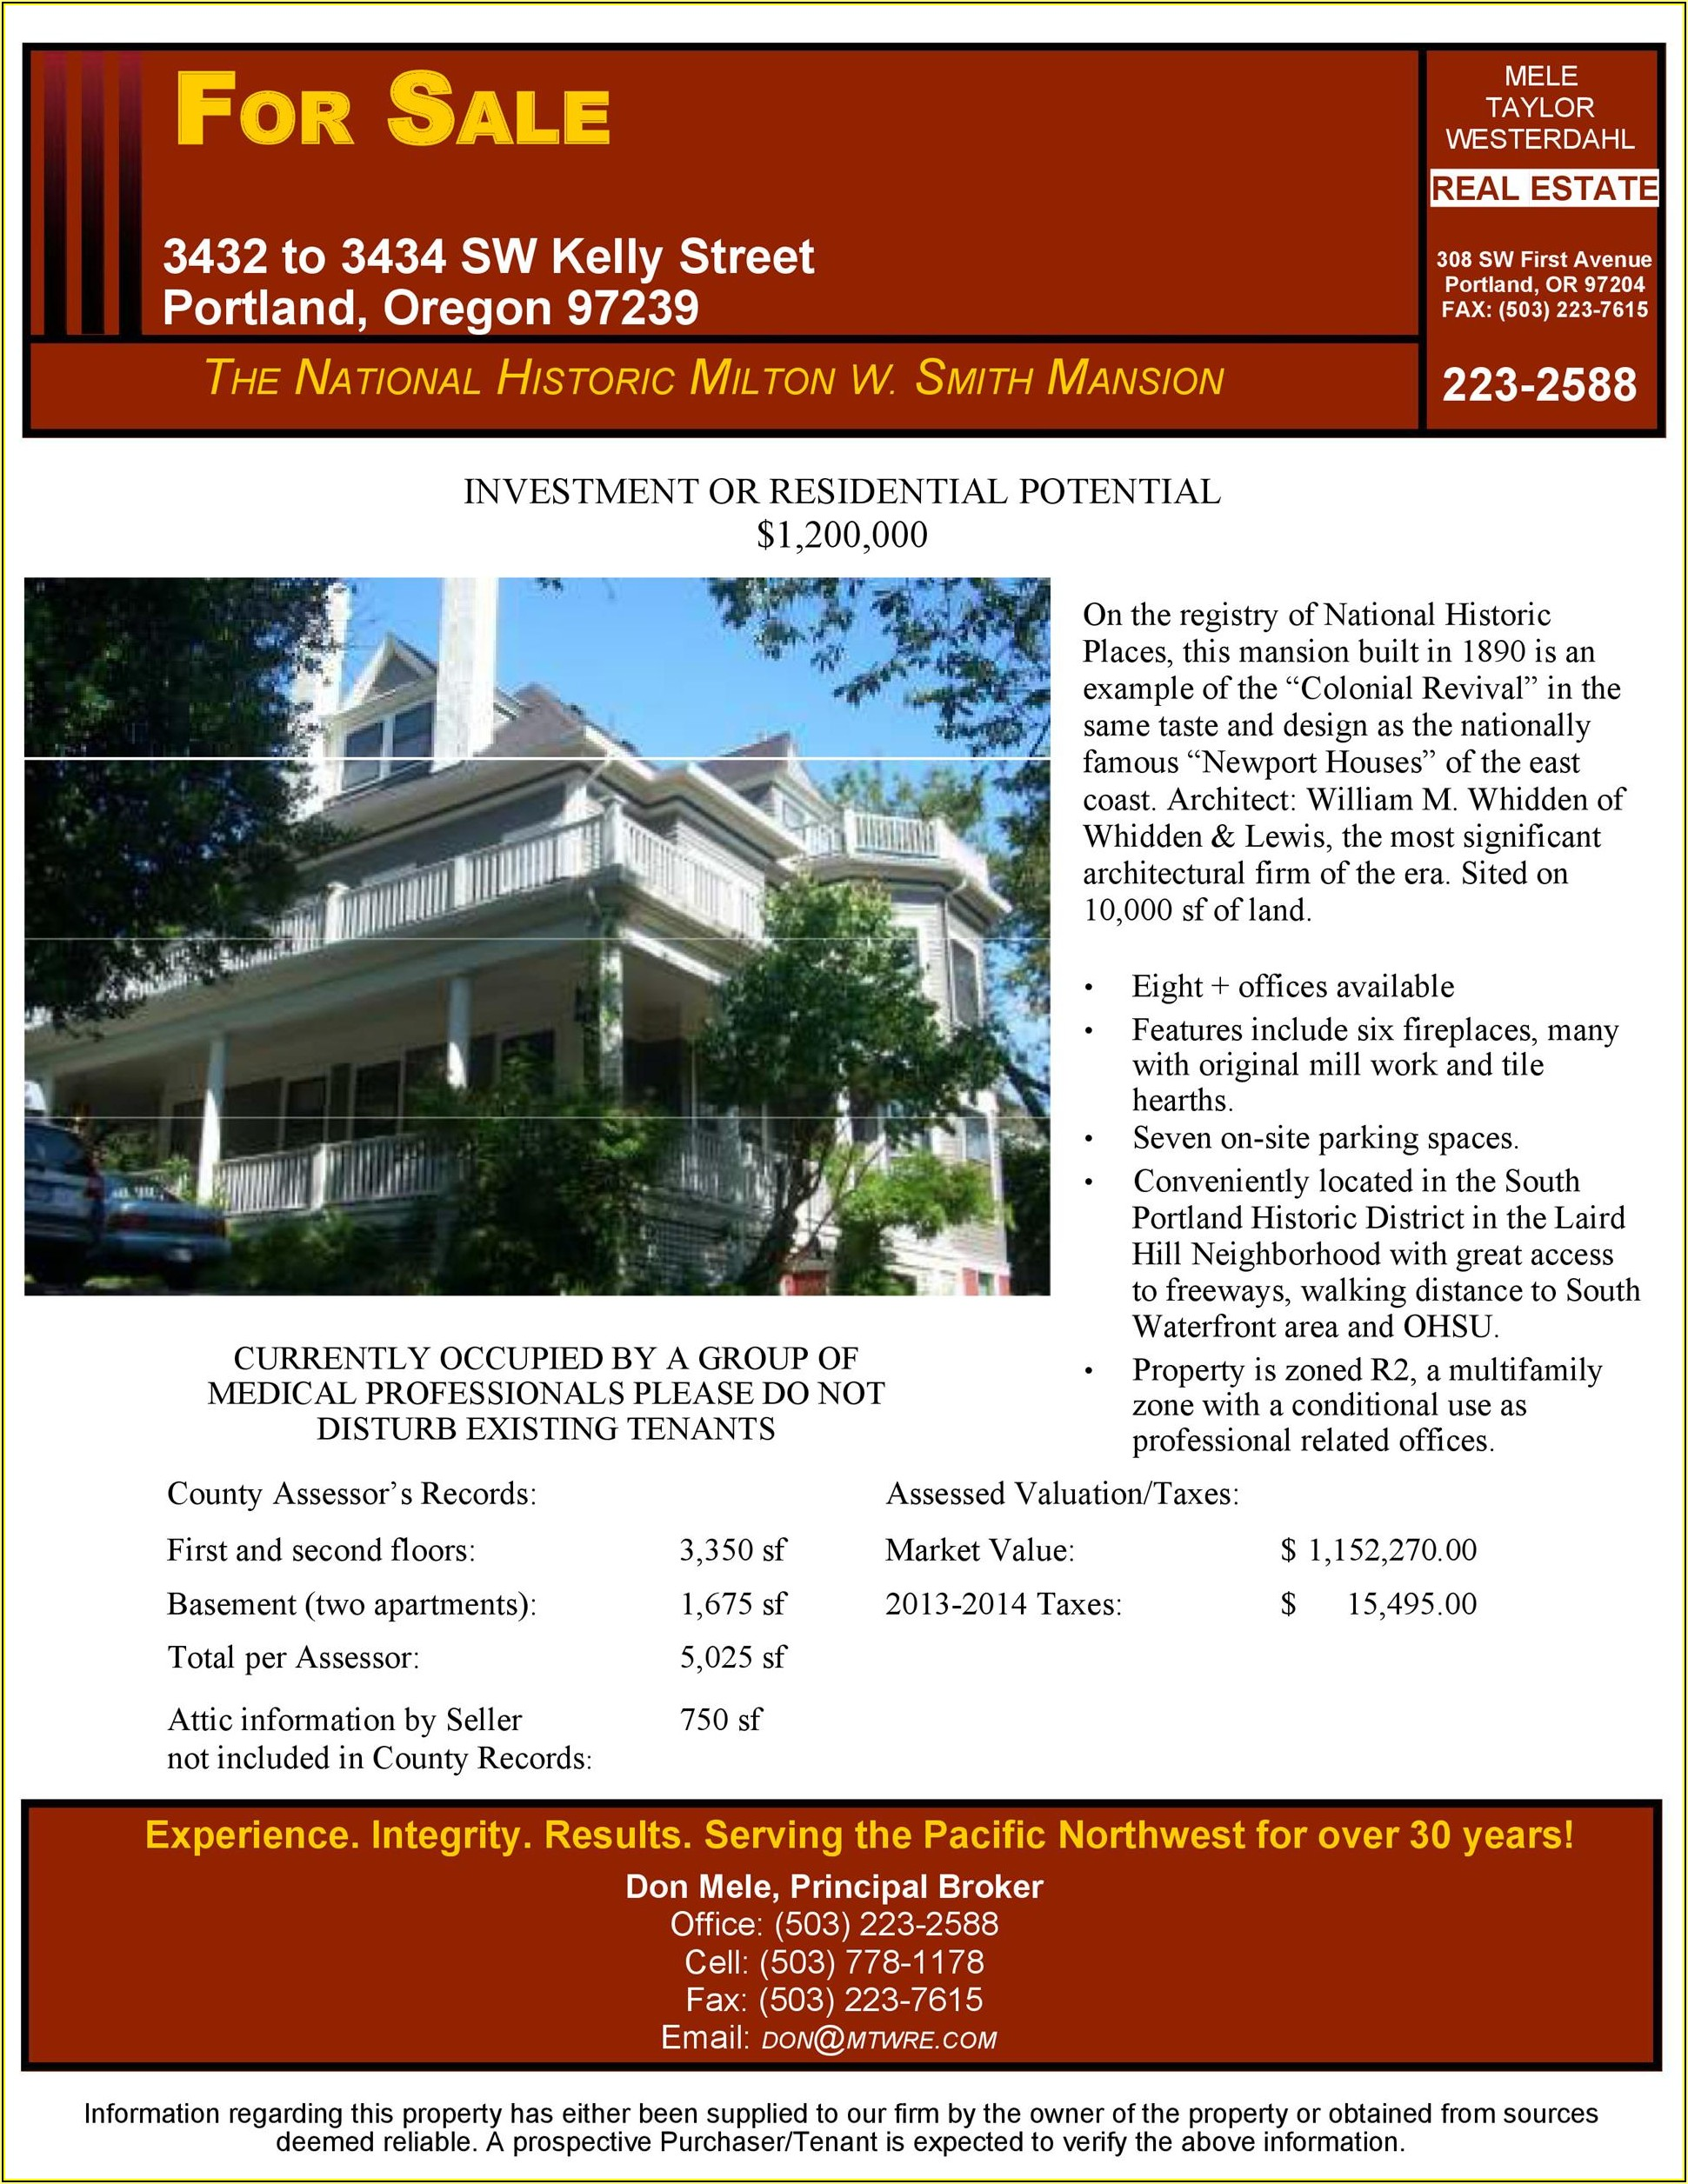 House For Sale Flyer Example